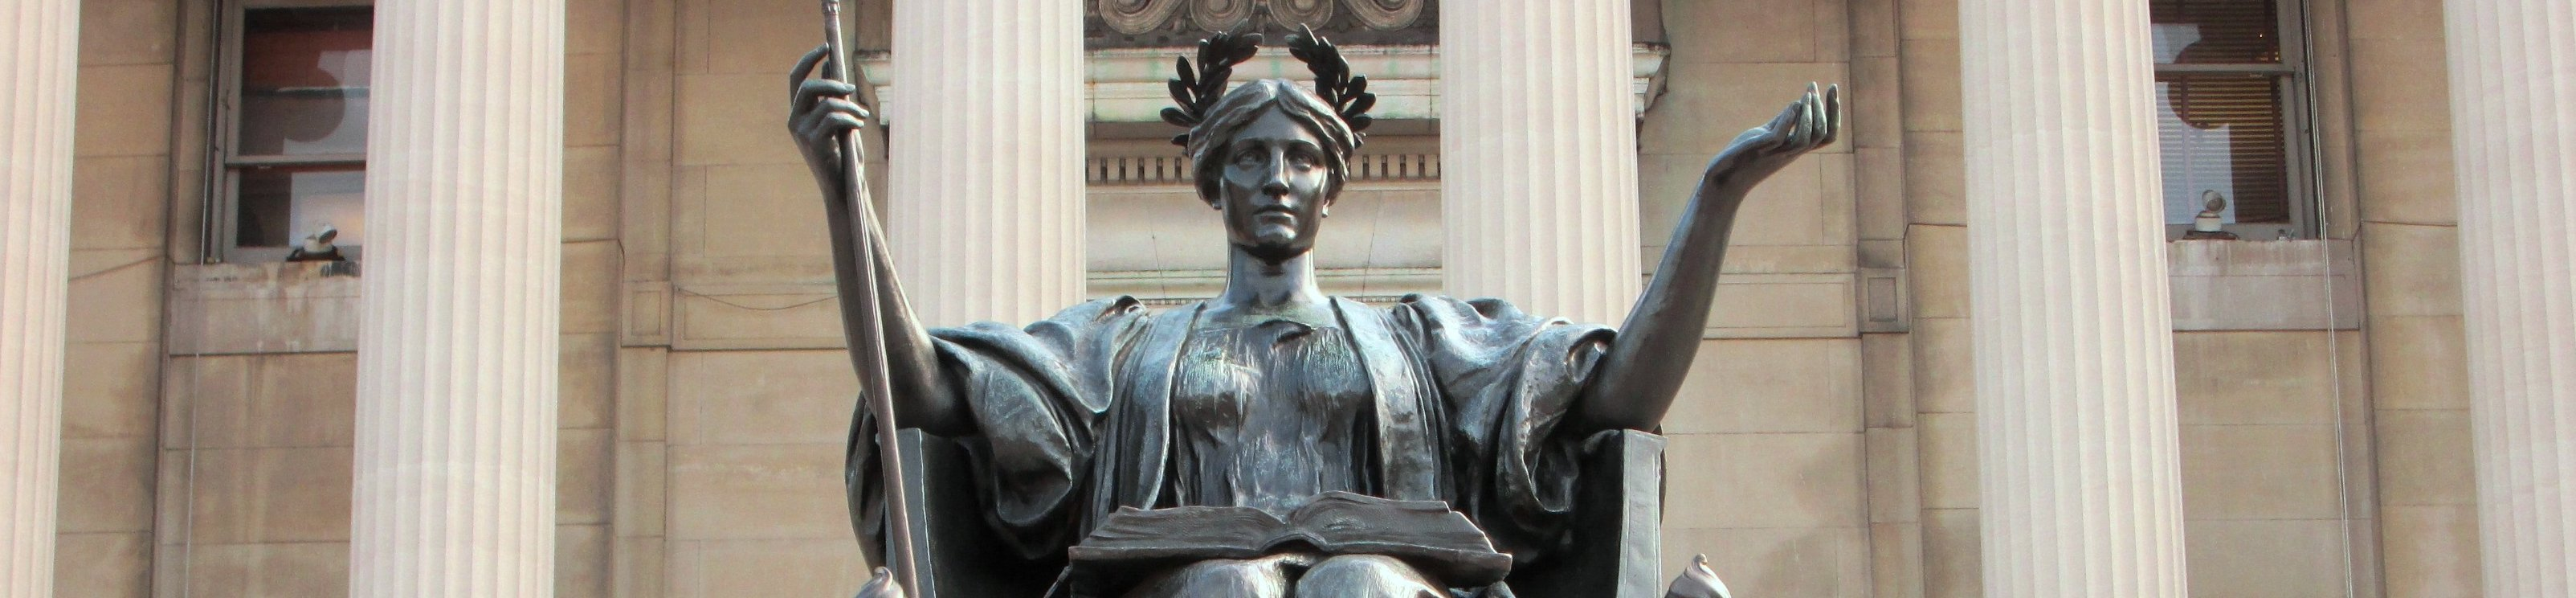 Statue outside Columbia University